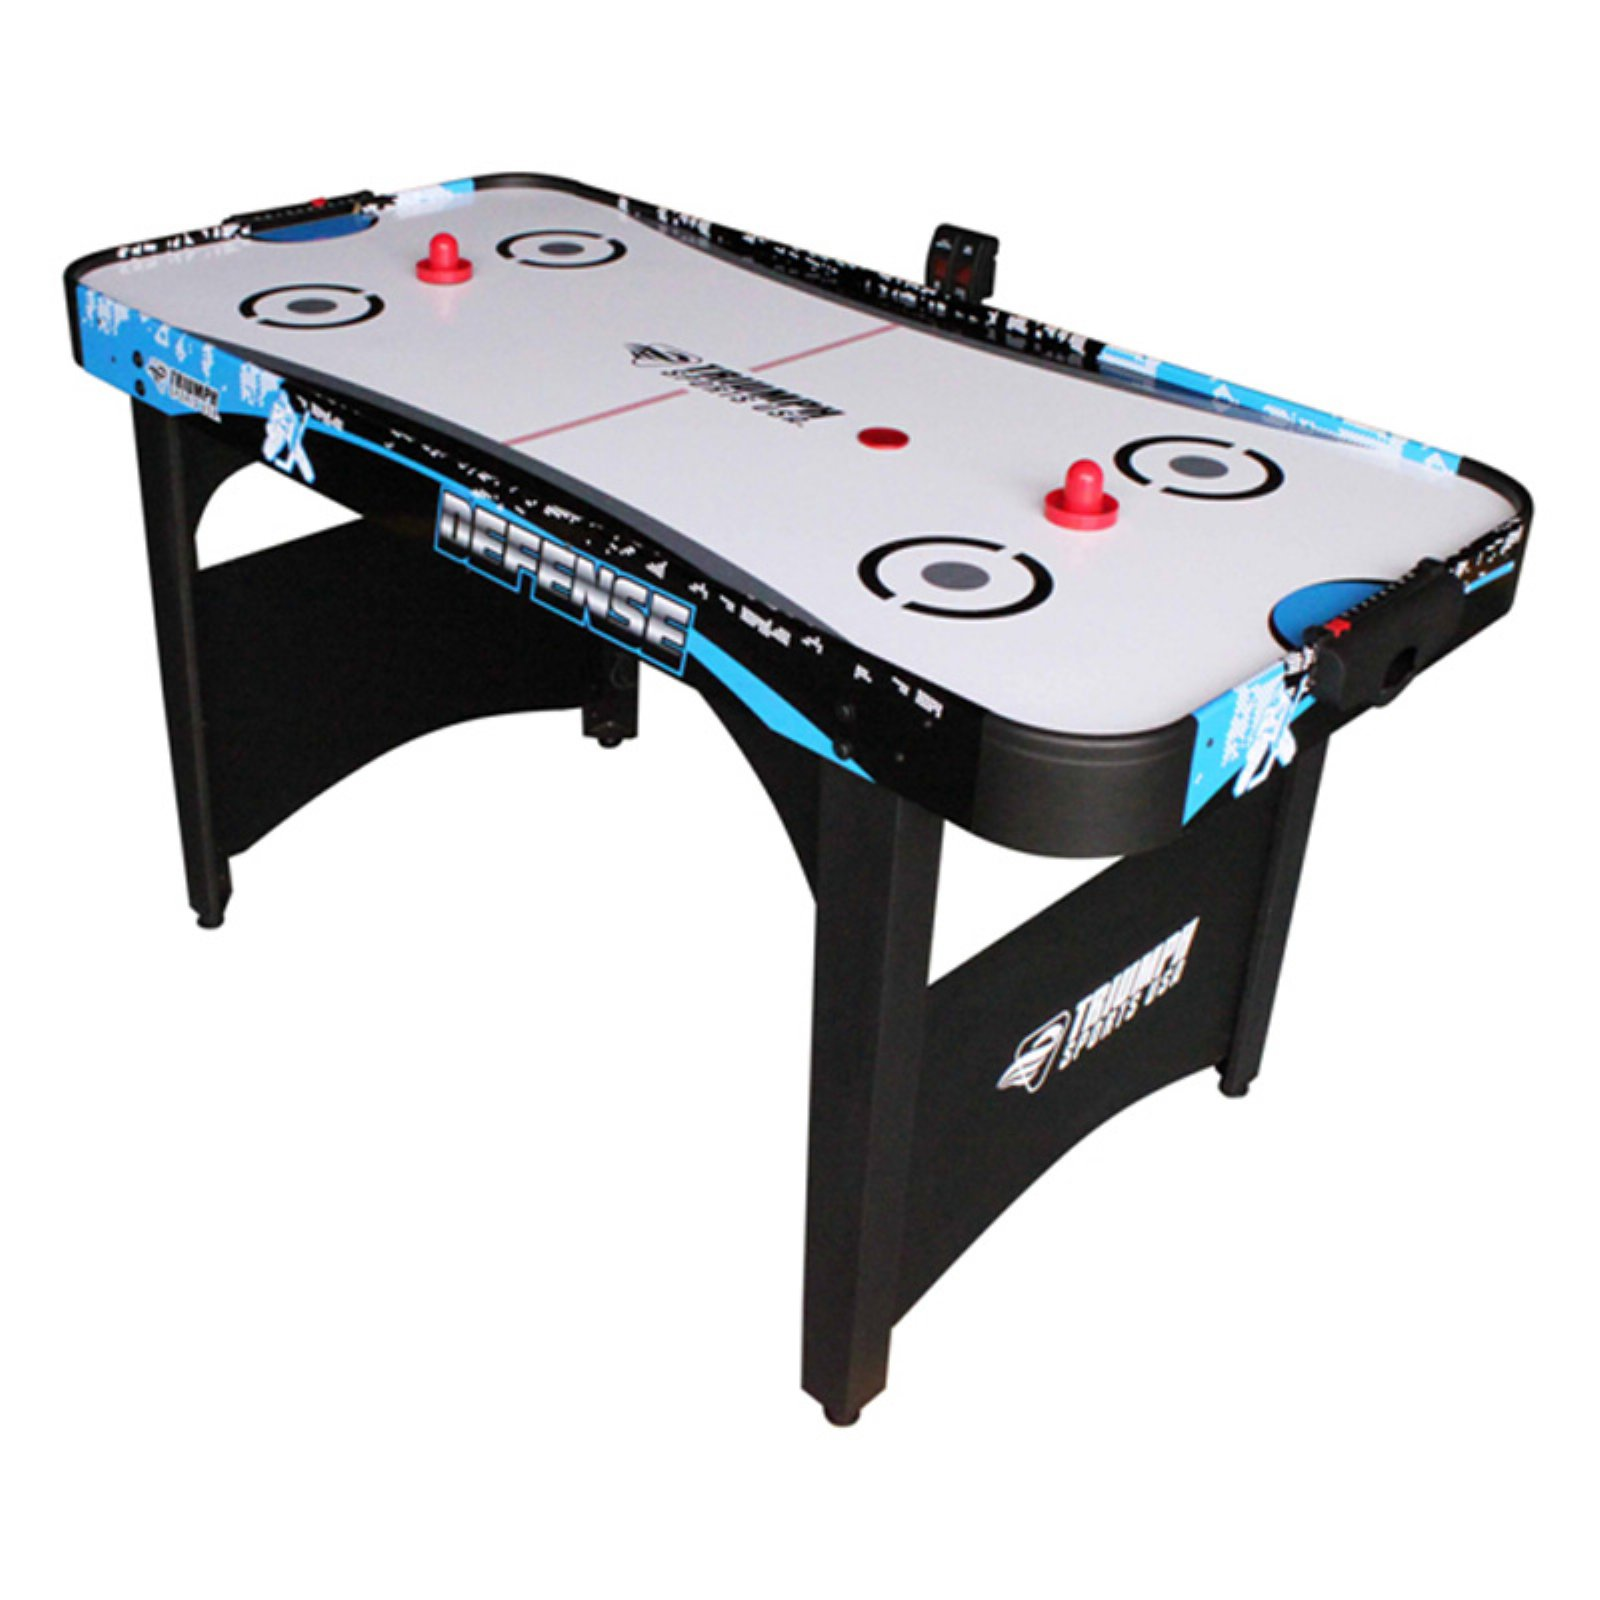 """Triumph 60"""" Defense Air Hockey Table with Electronic Scorer by Escalade Sports"""